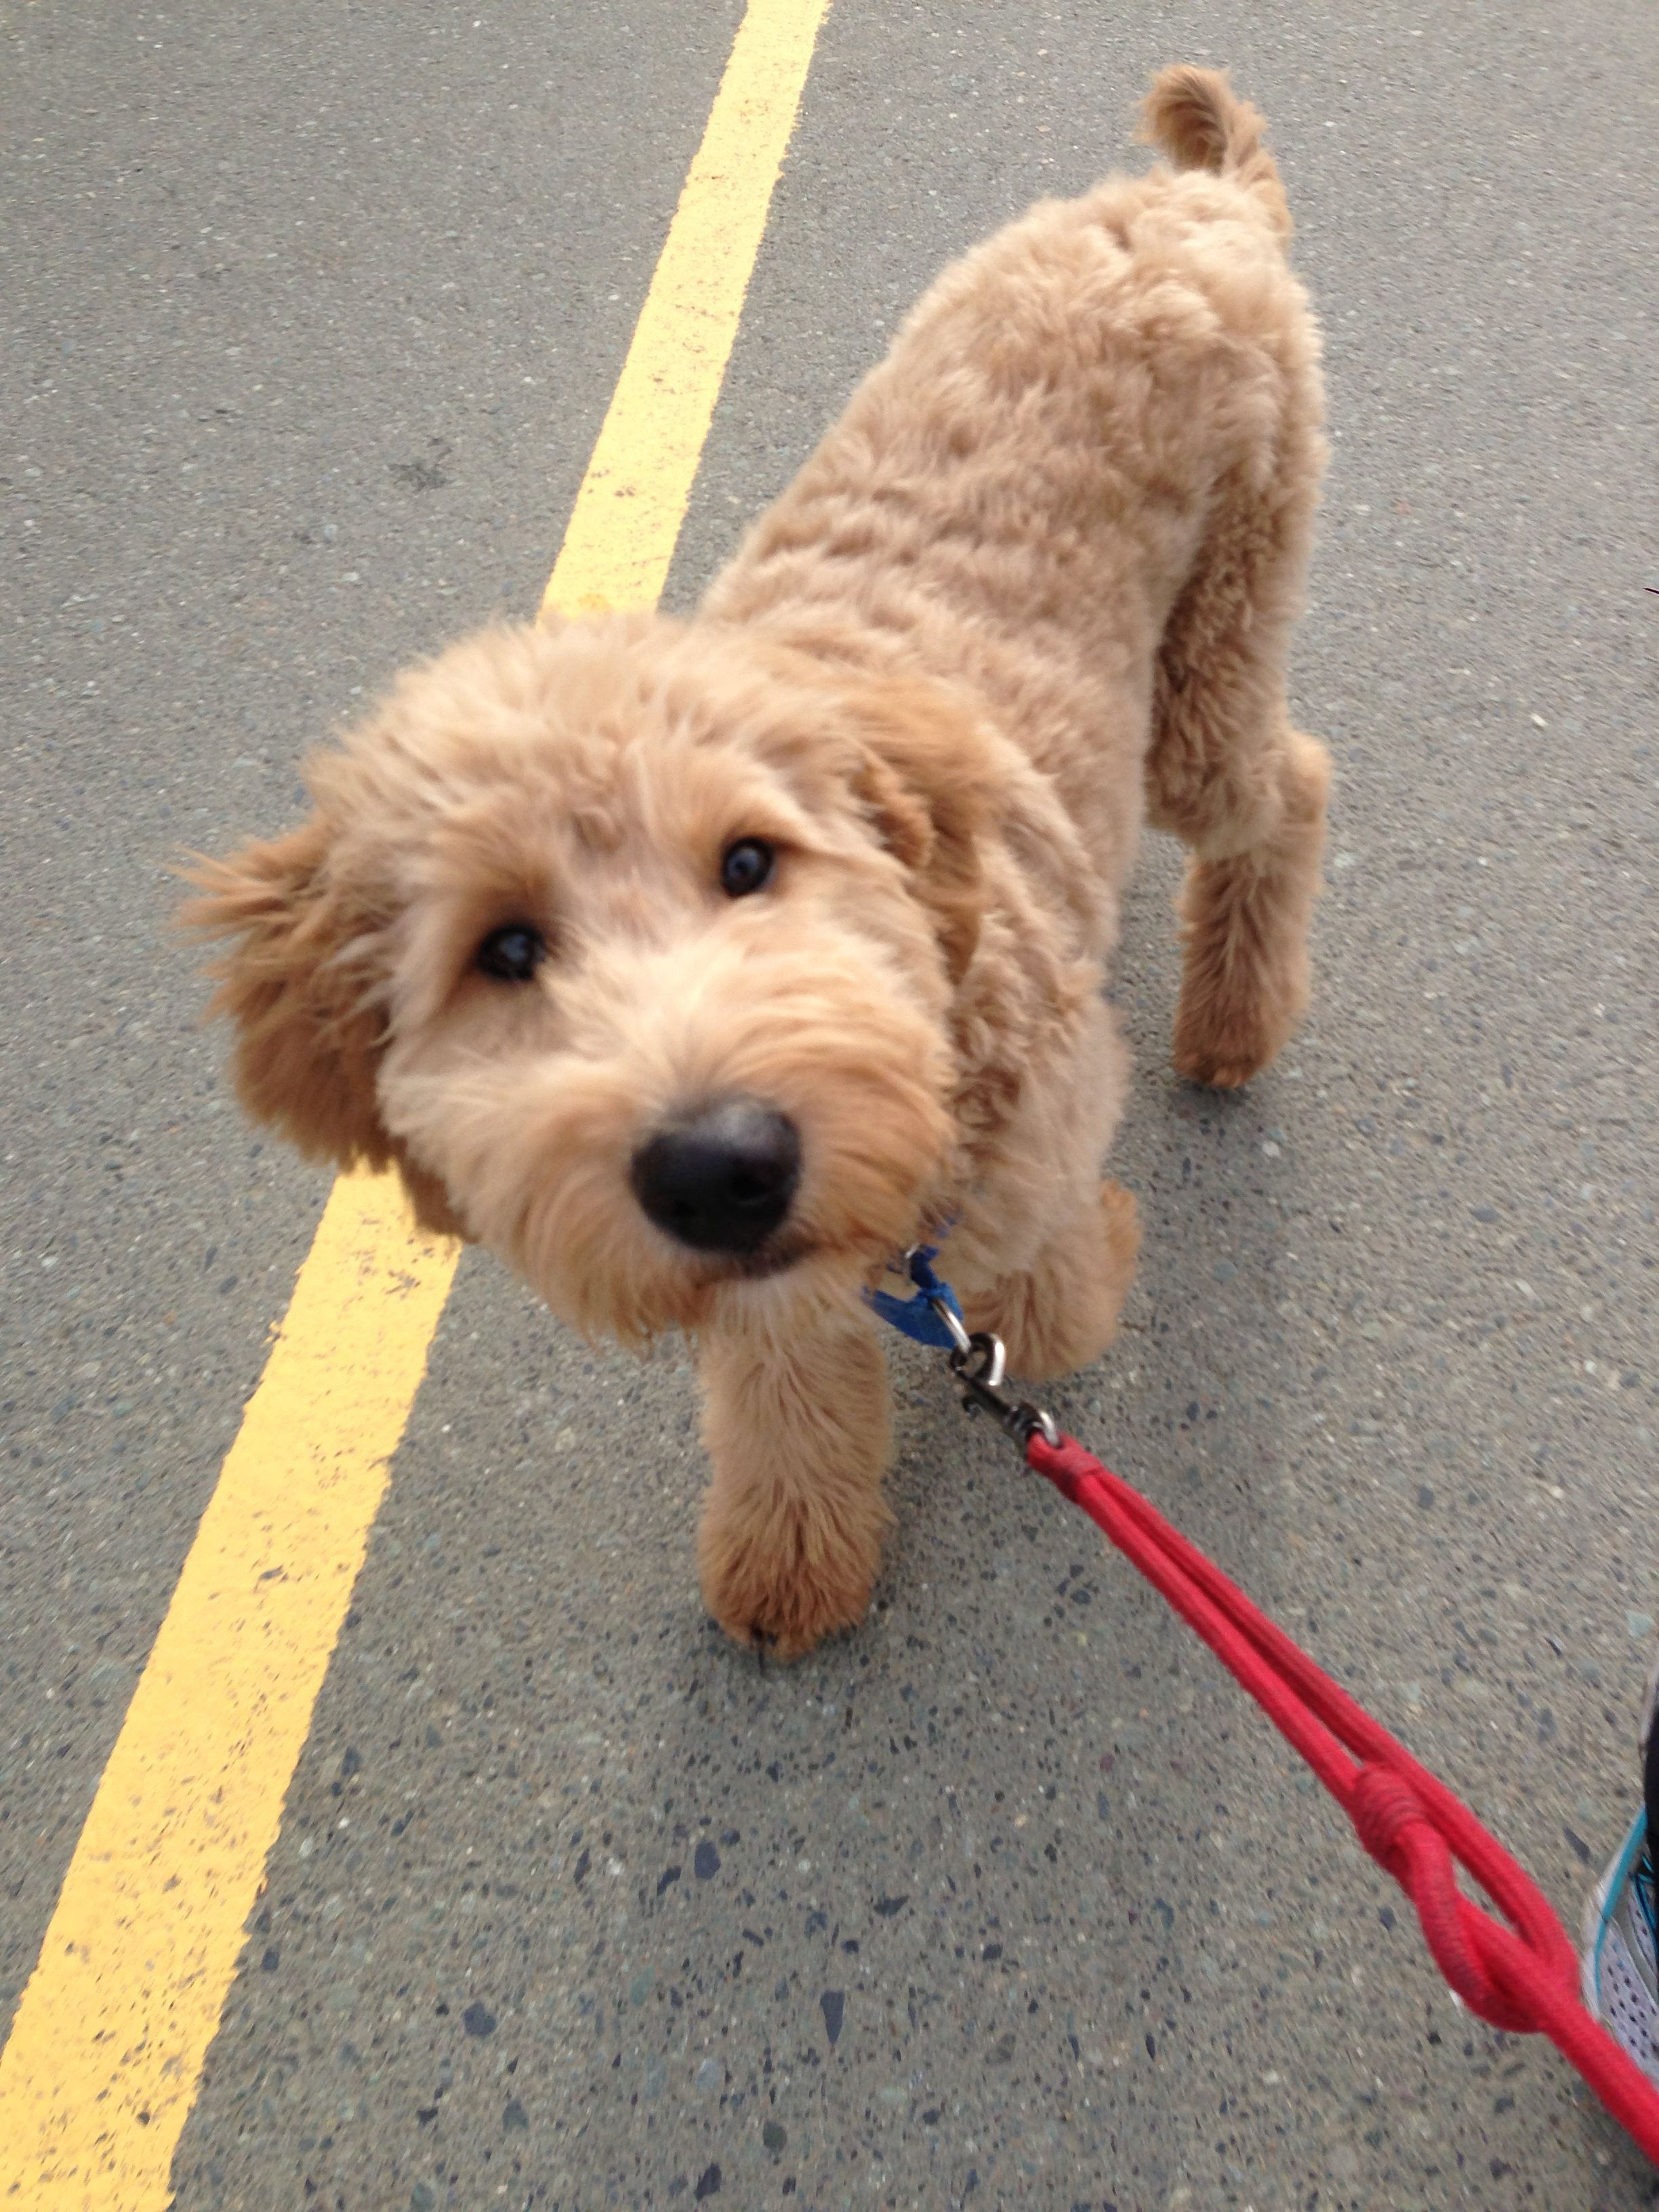 goldendoodle haircut goldendoodle haircut pictures goldendoodle gave one of these cuties a bath today at